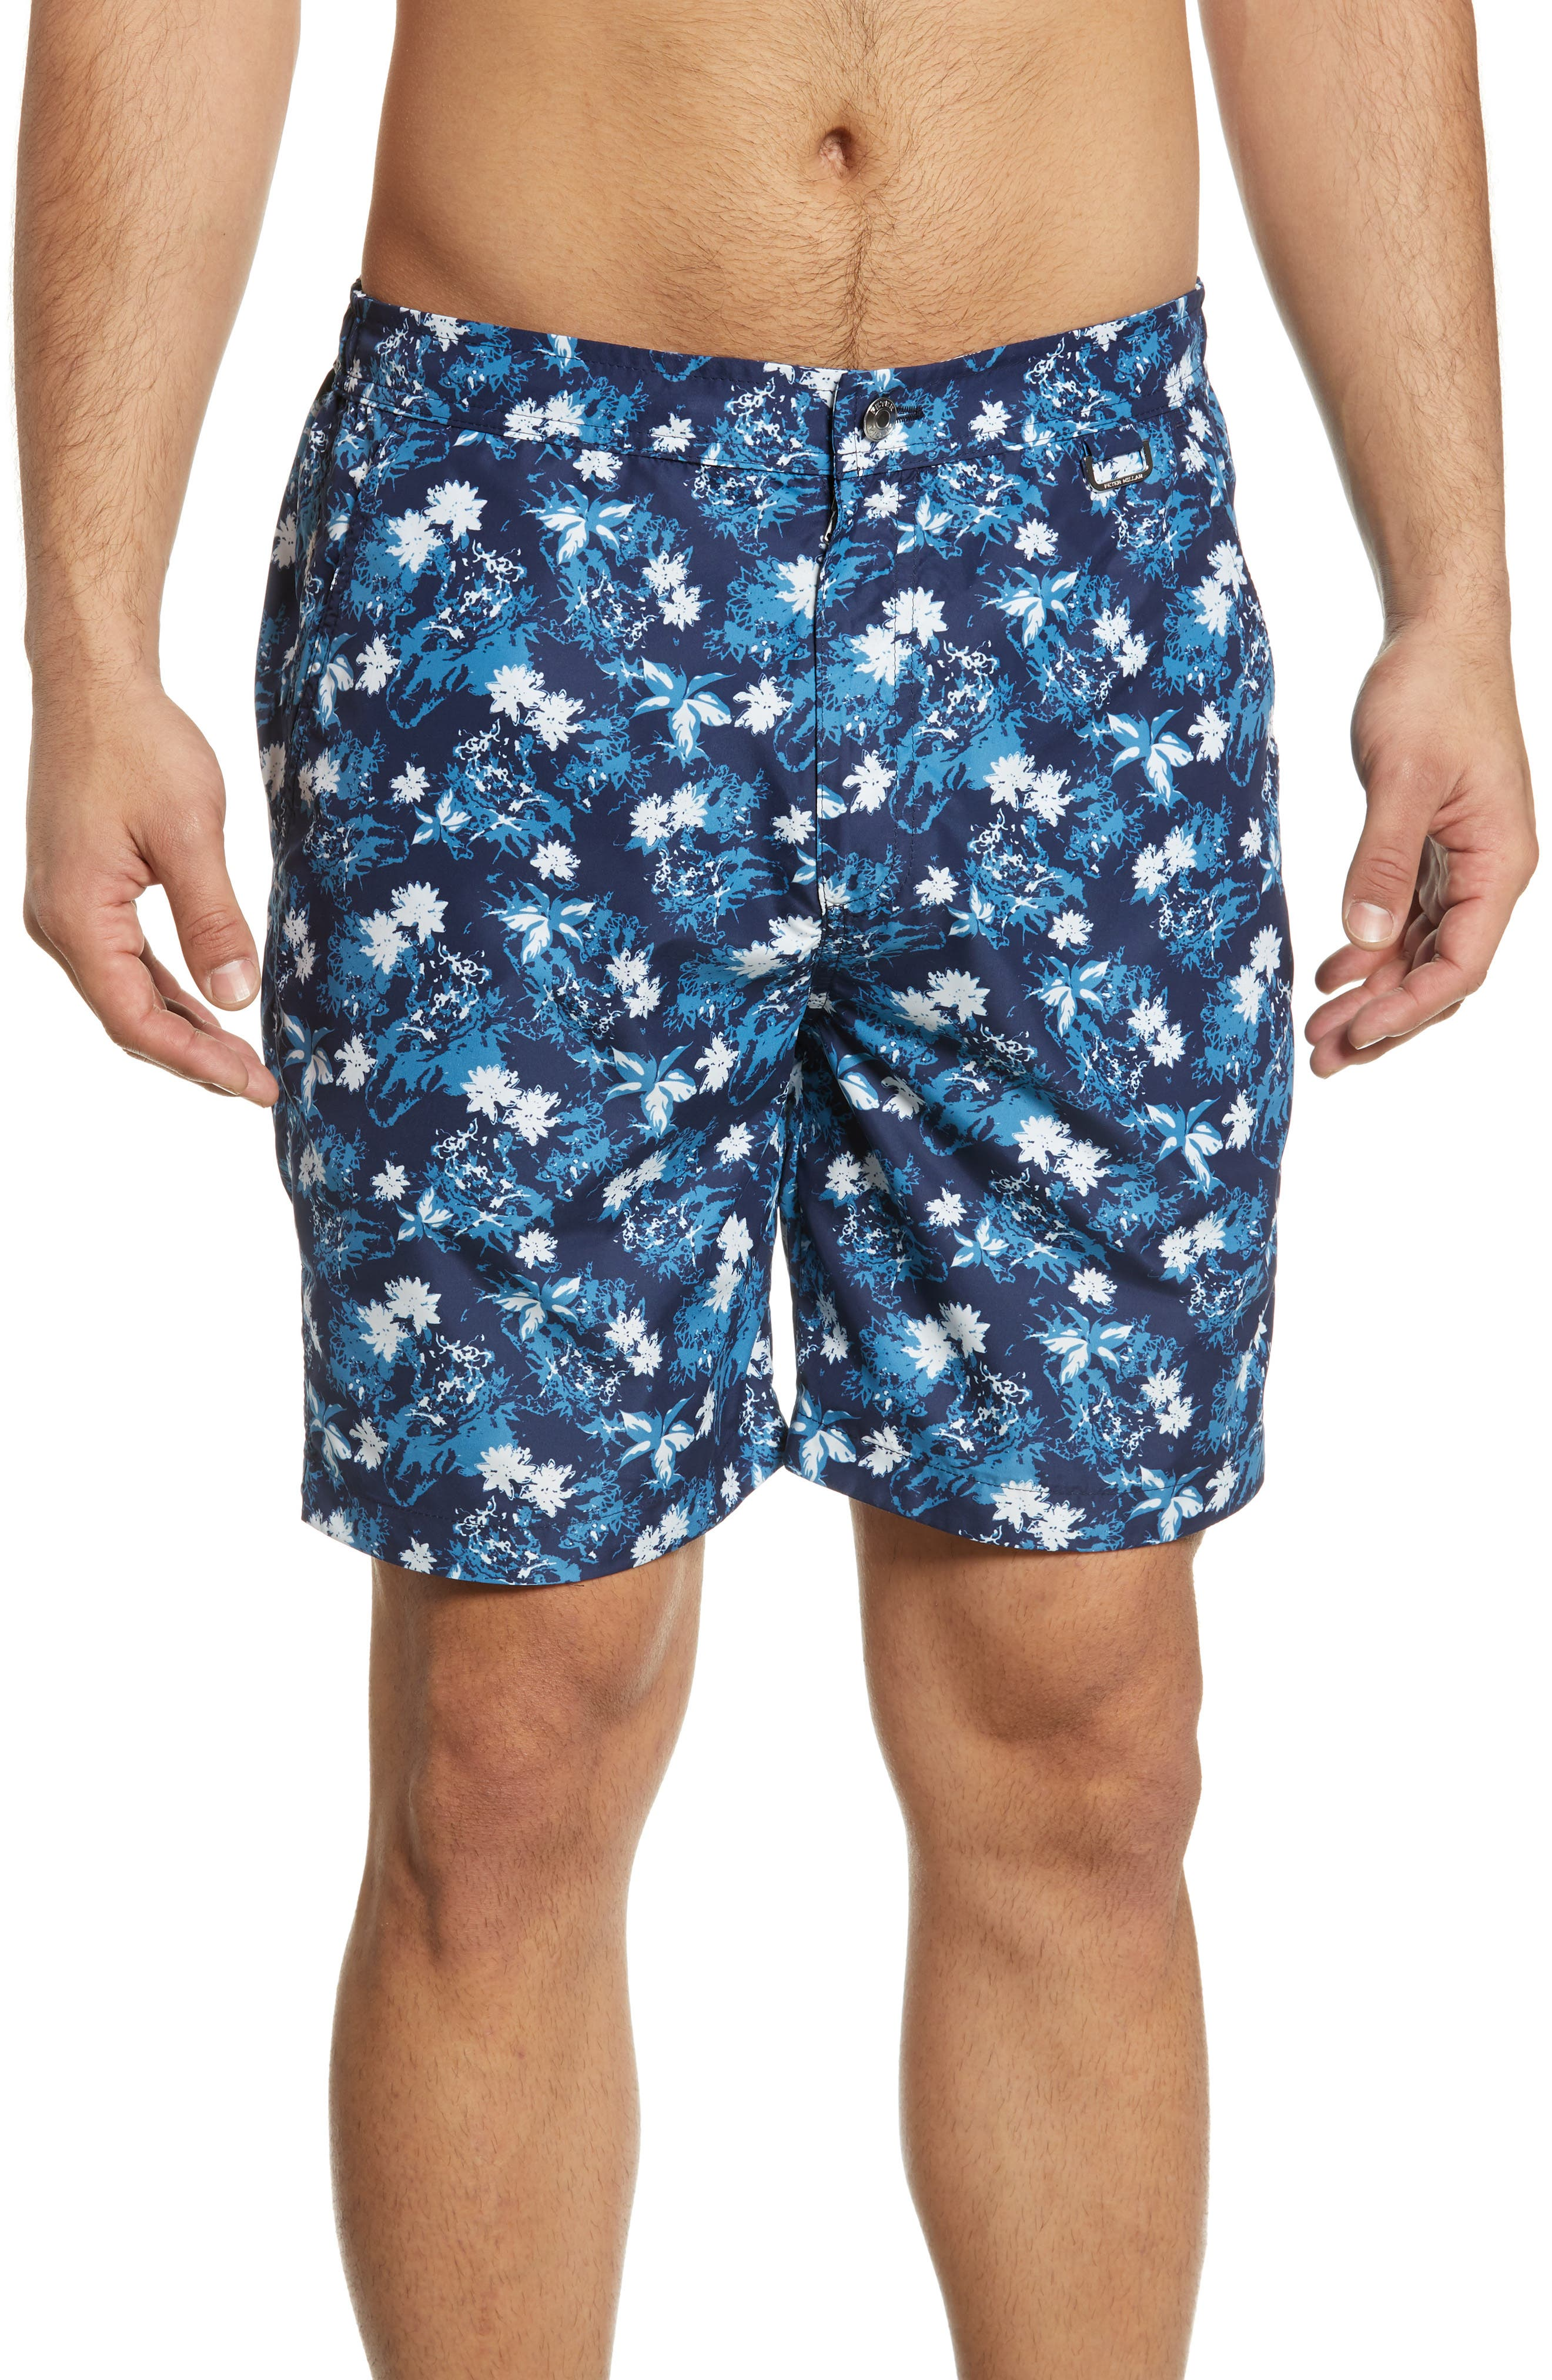 Peter Millar Collection Indigo Floral Swim Trunks, Blue